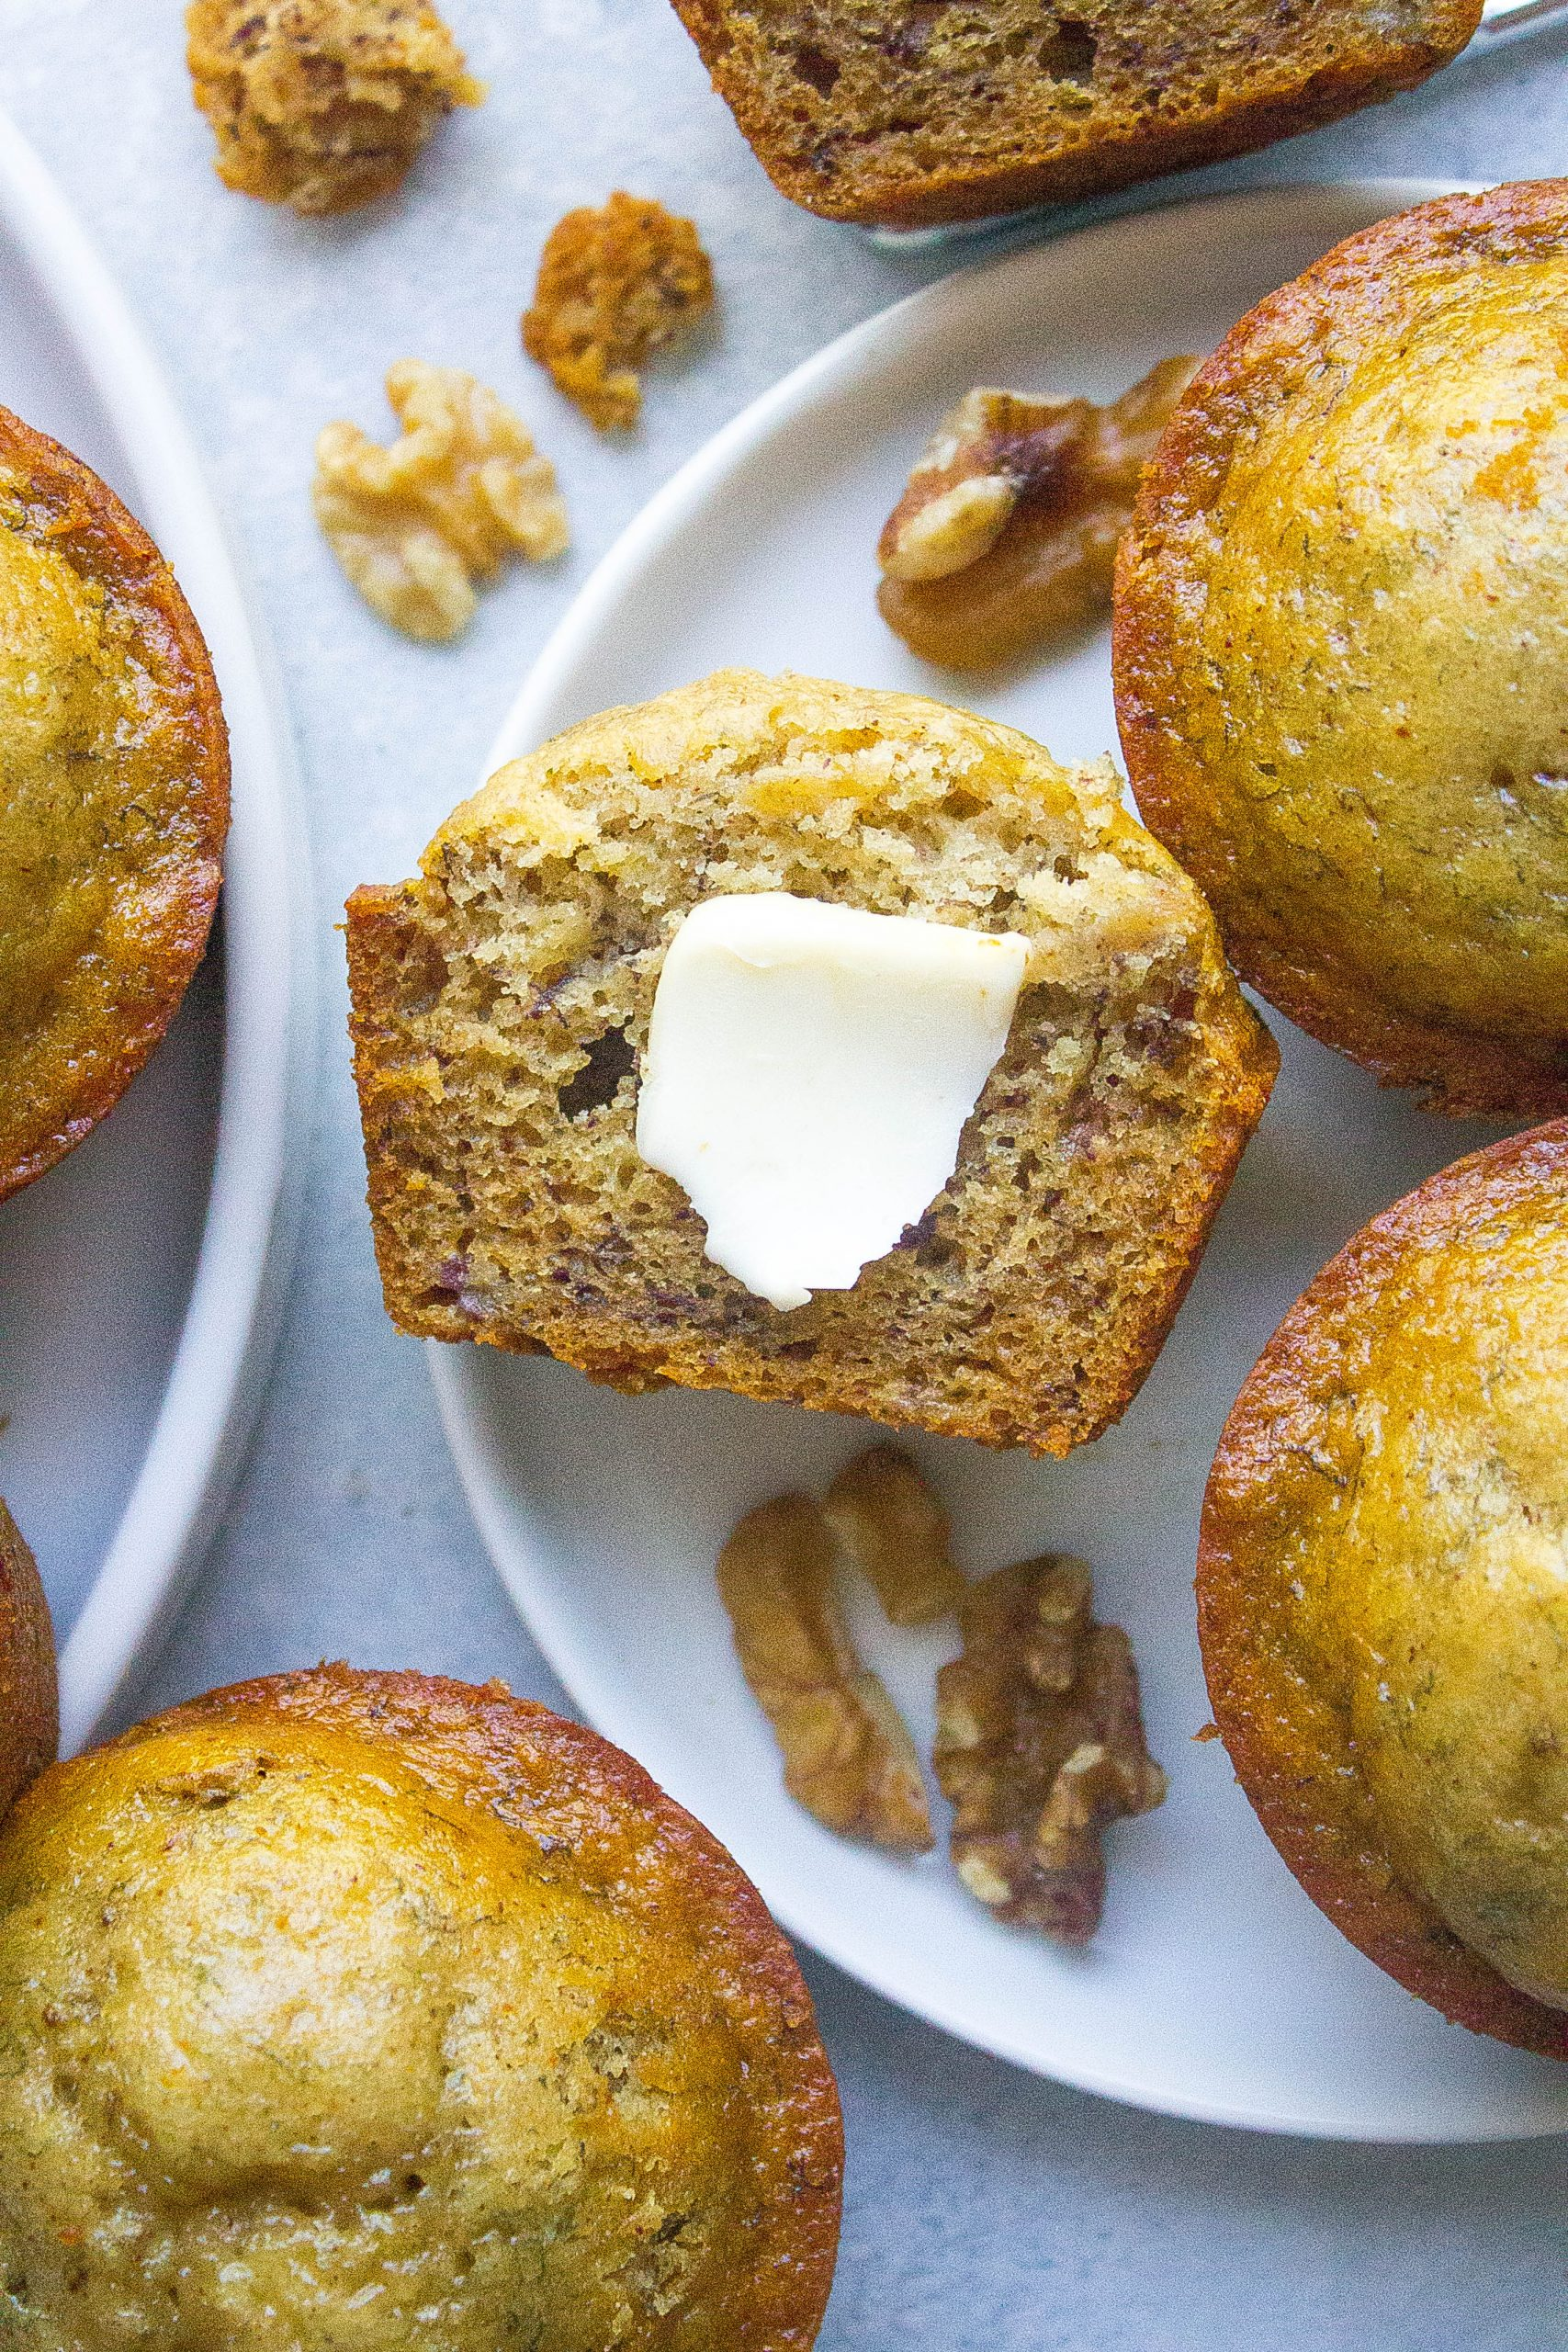 Healthy Banana Nut Muffins with butter on top